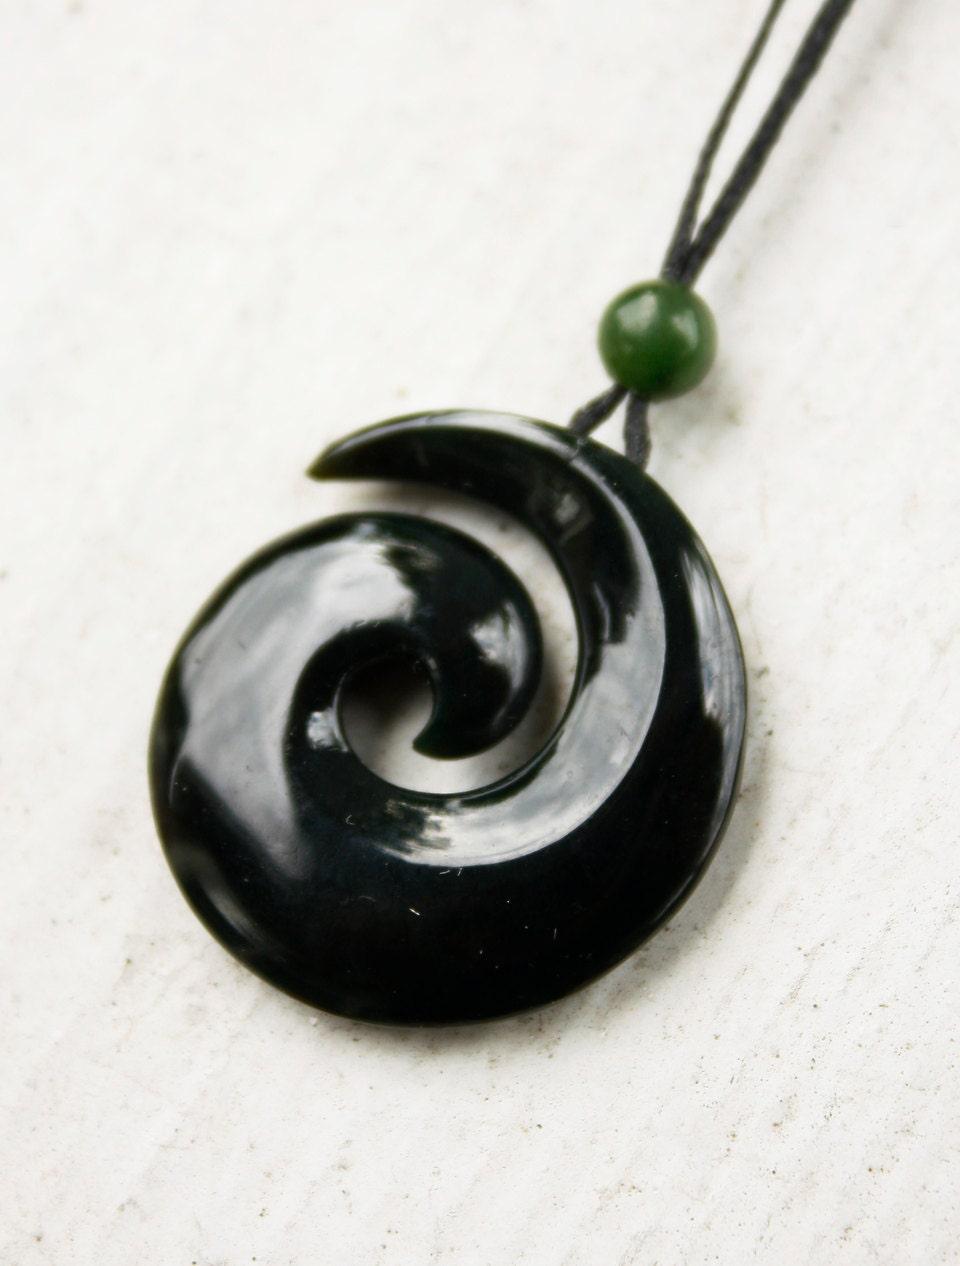 sterling chains shop magnify over spoil larger koru made stone yourself solid in to no pendant mouse image new nz zealand silver imagemove pendants the